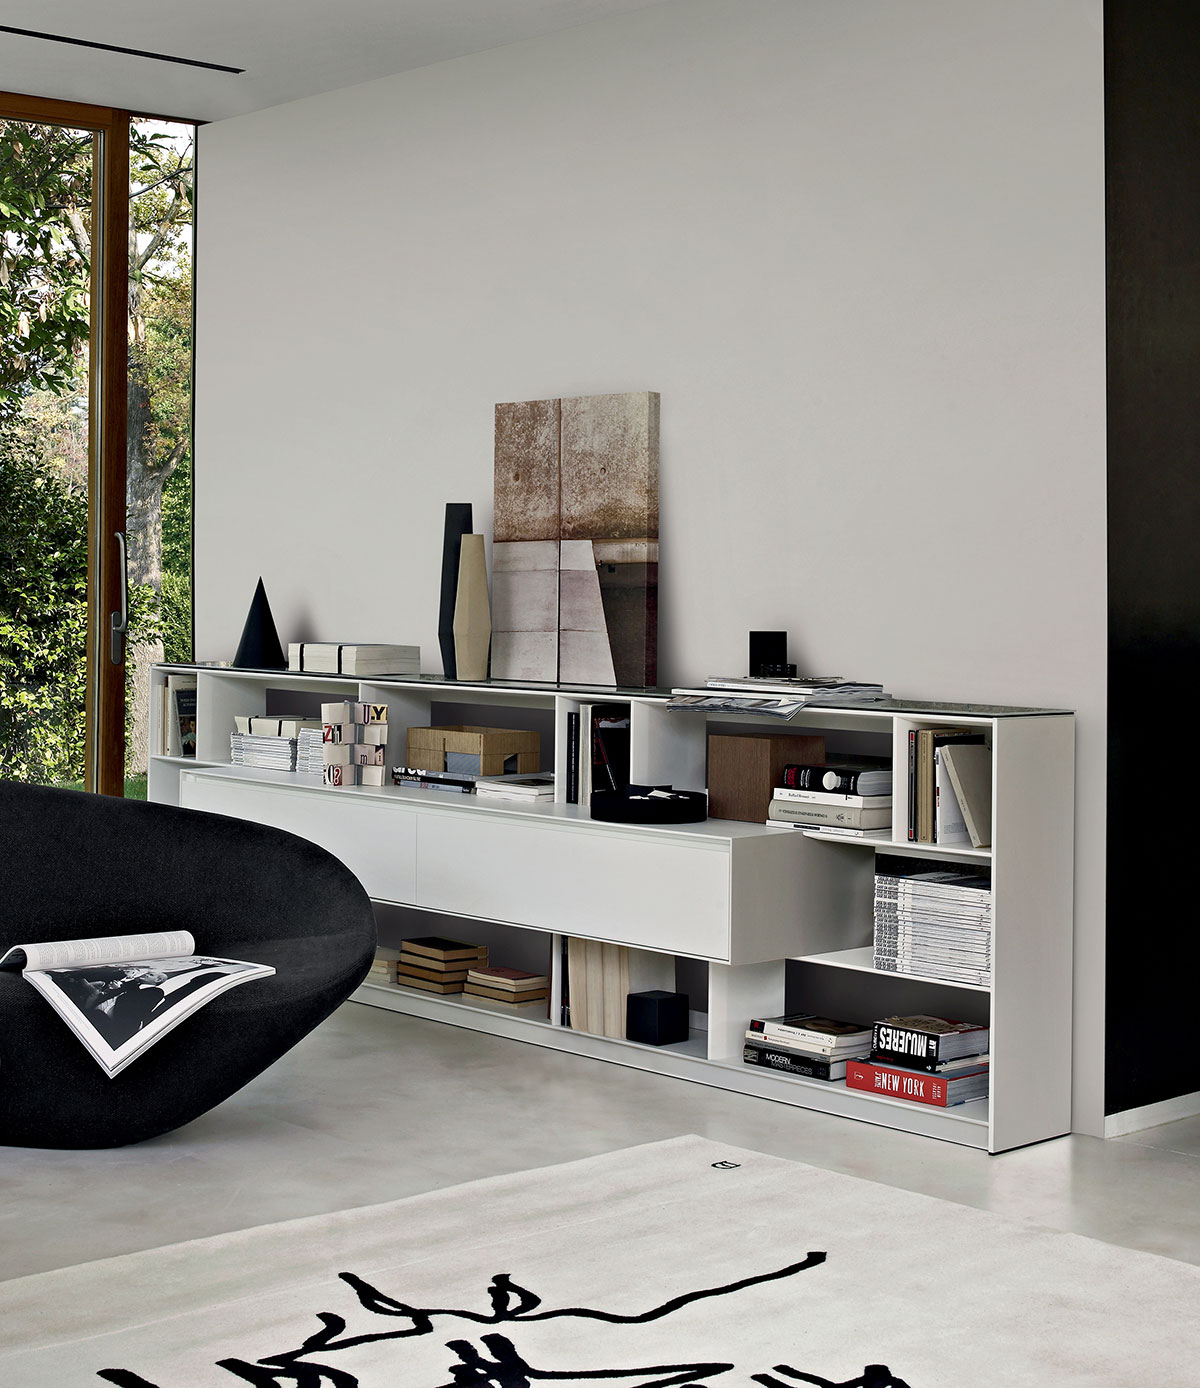 The  Flat C storage system  by Antonio Citterio for B&B Italia was designed to house entertainment systems and books in the smallest space possible.